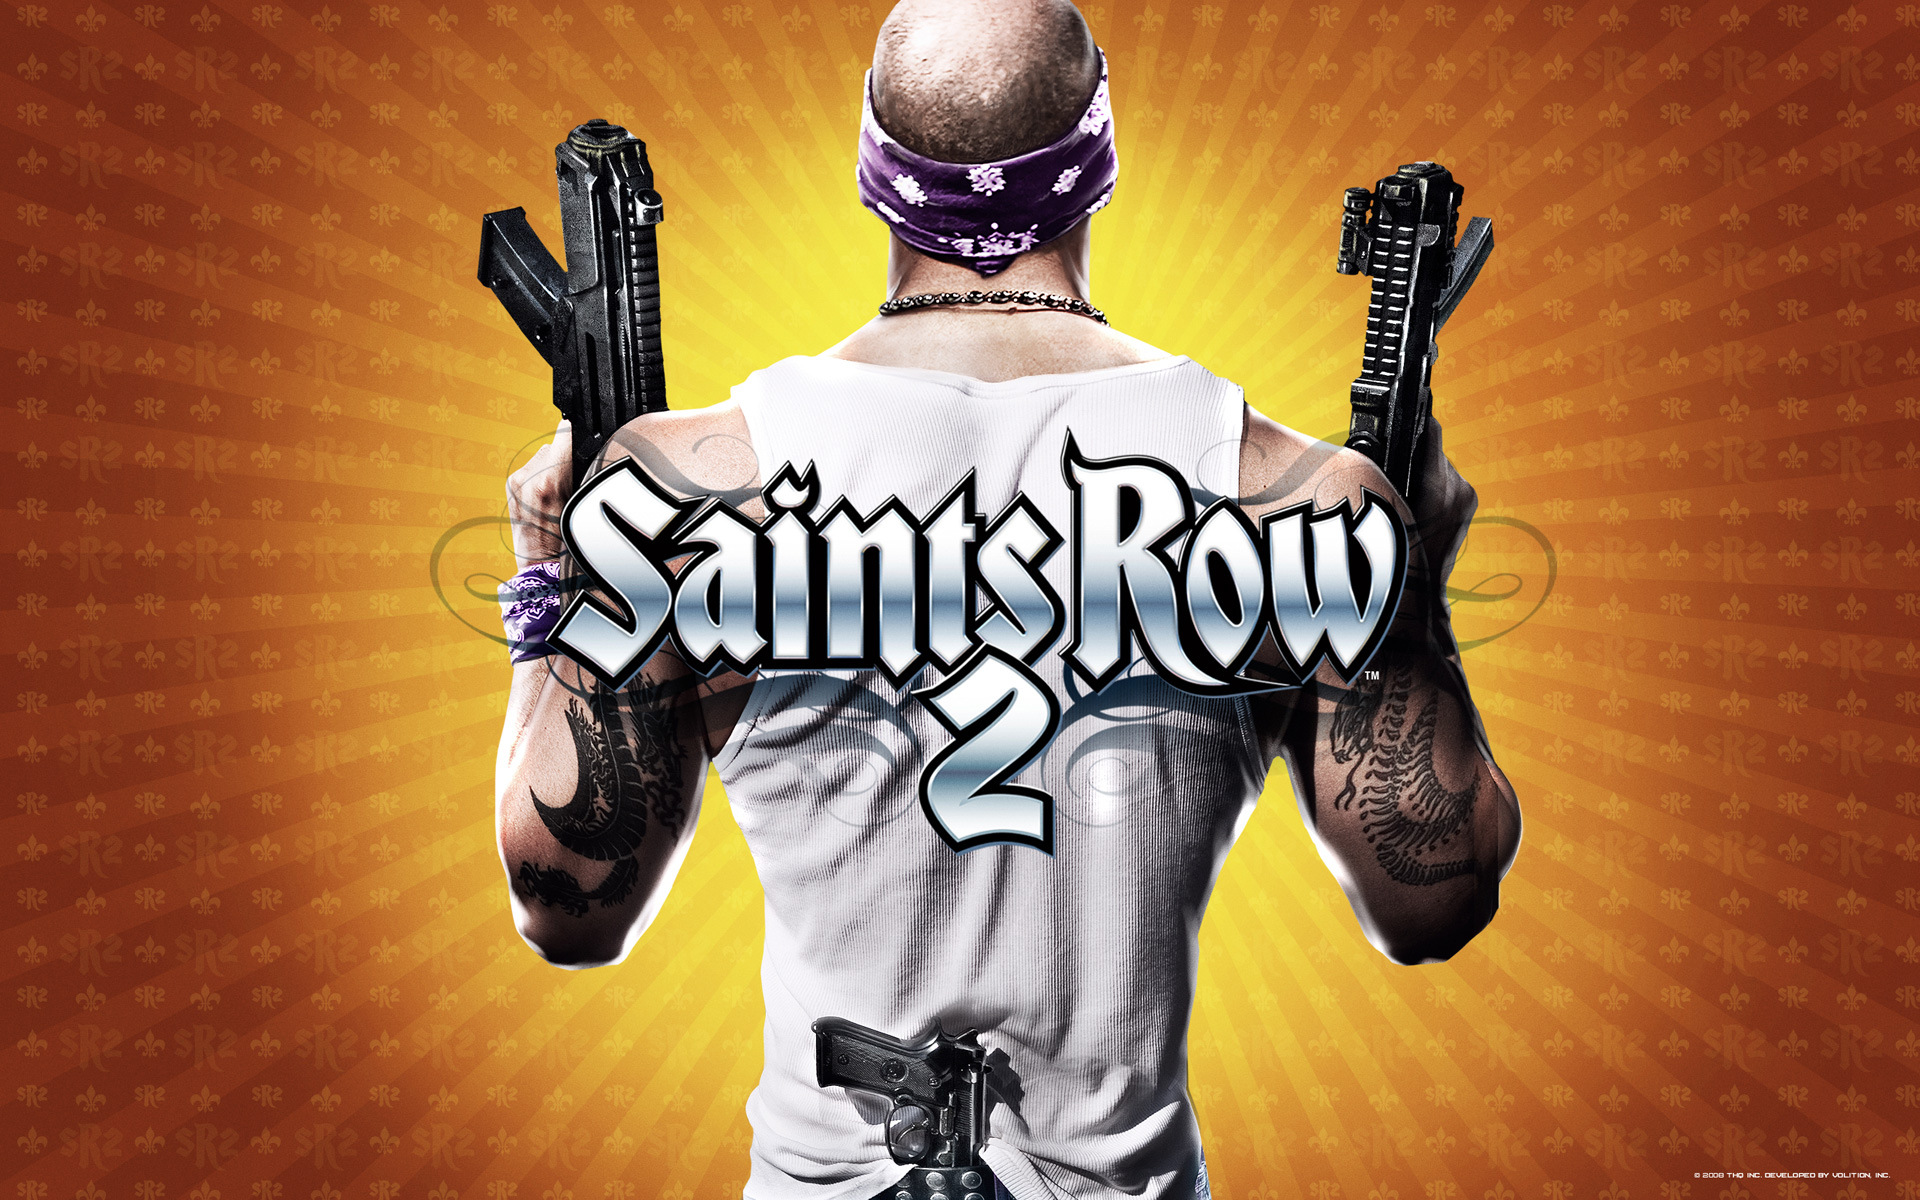 saints-row-2-01-1920x1200.jpg